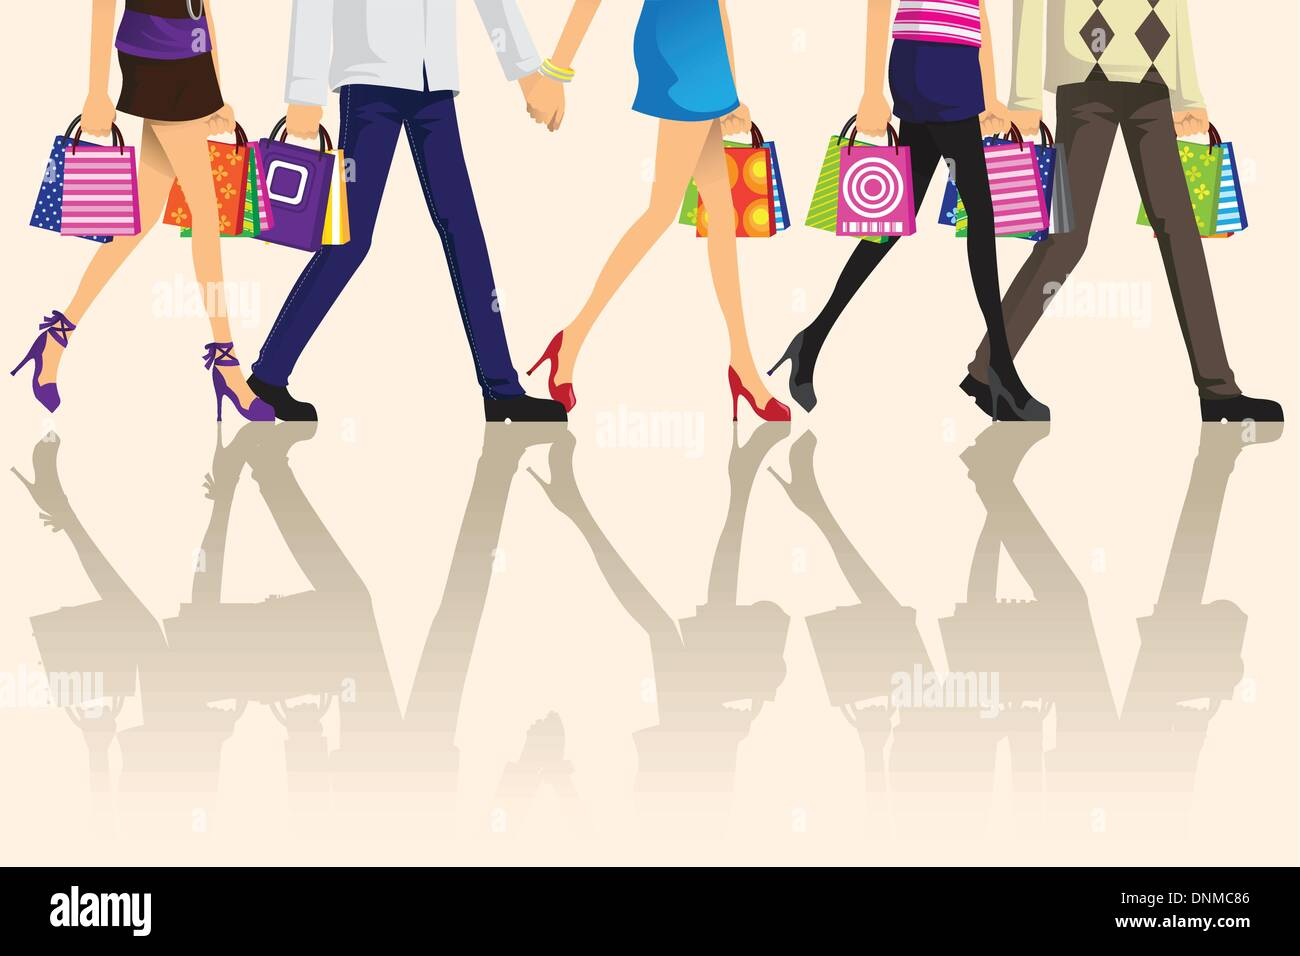 A vector illustration of shopping people carrying shopping bags - Stock Image